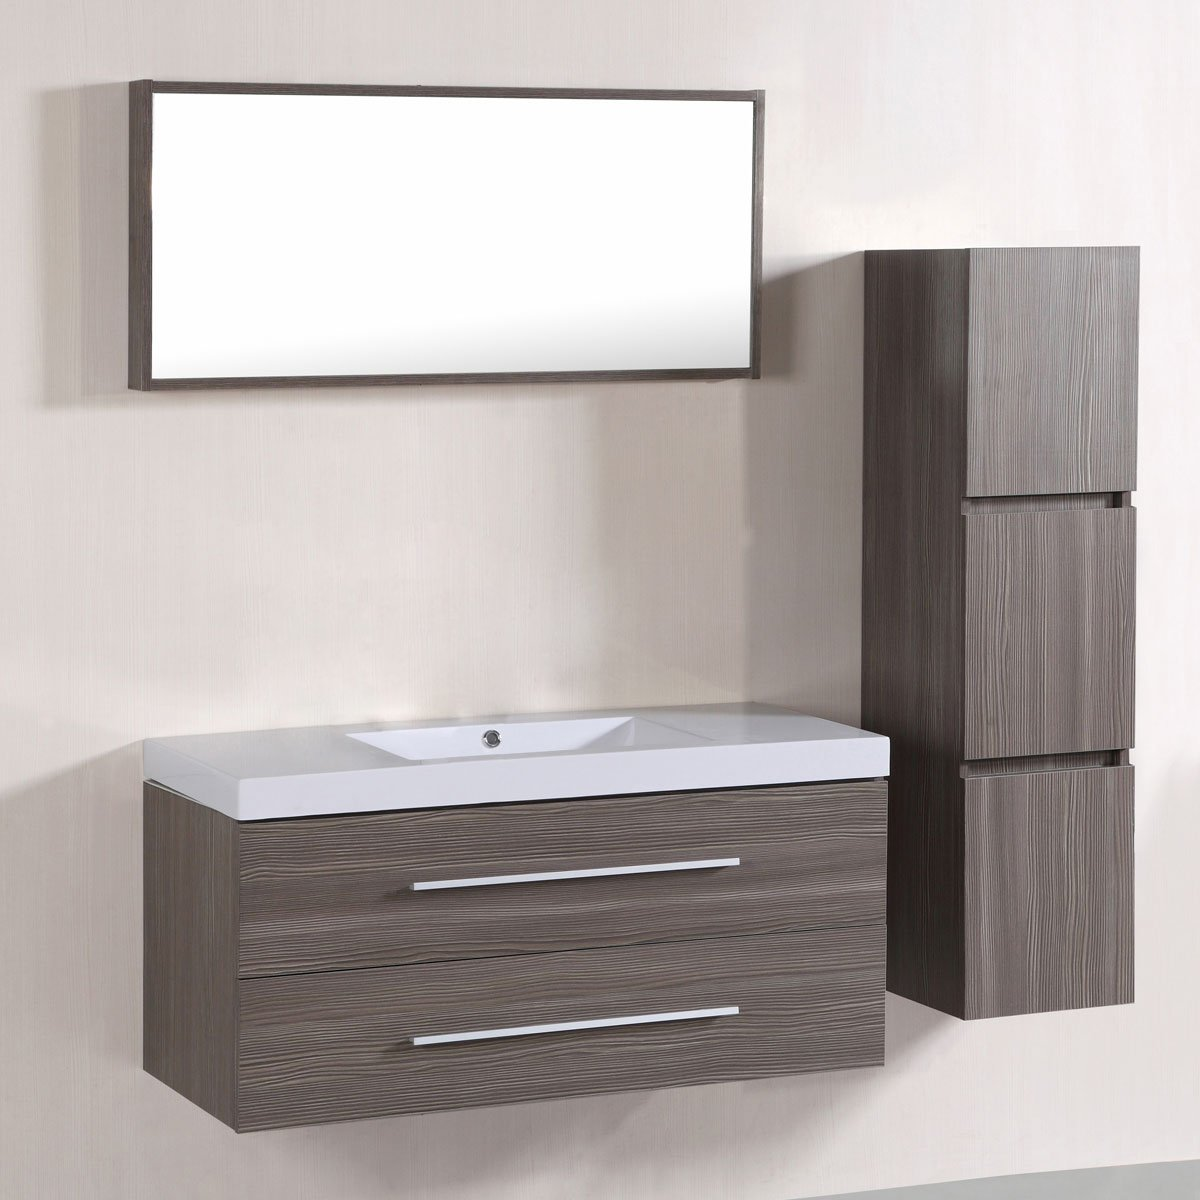 BHBL 40 In. Wall Mount Bathroom Vanity Set with Single Sink and Mirror (C-T5167A) by BHBL